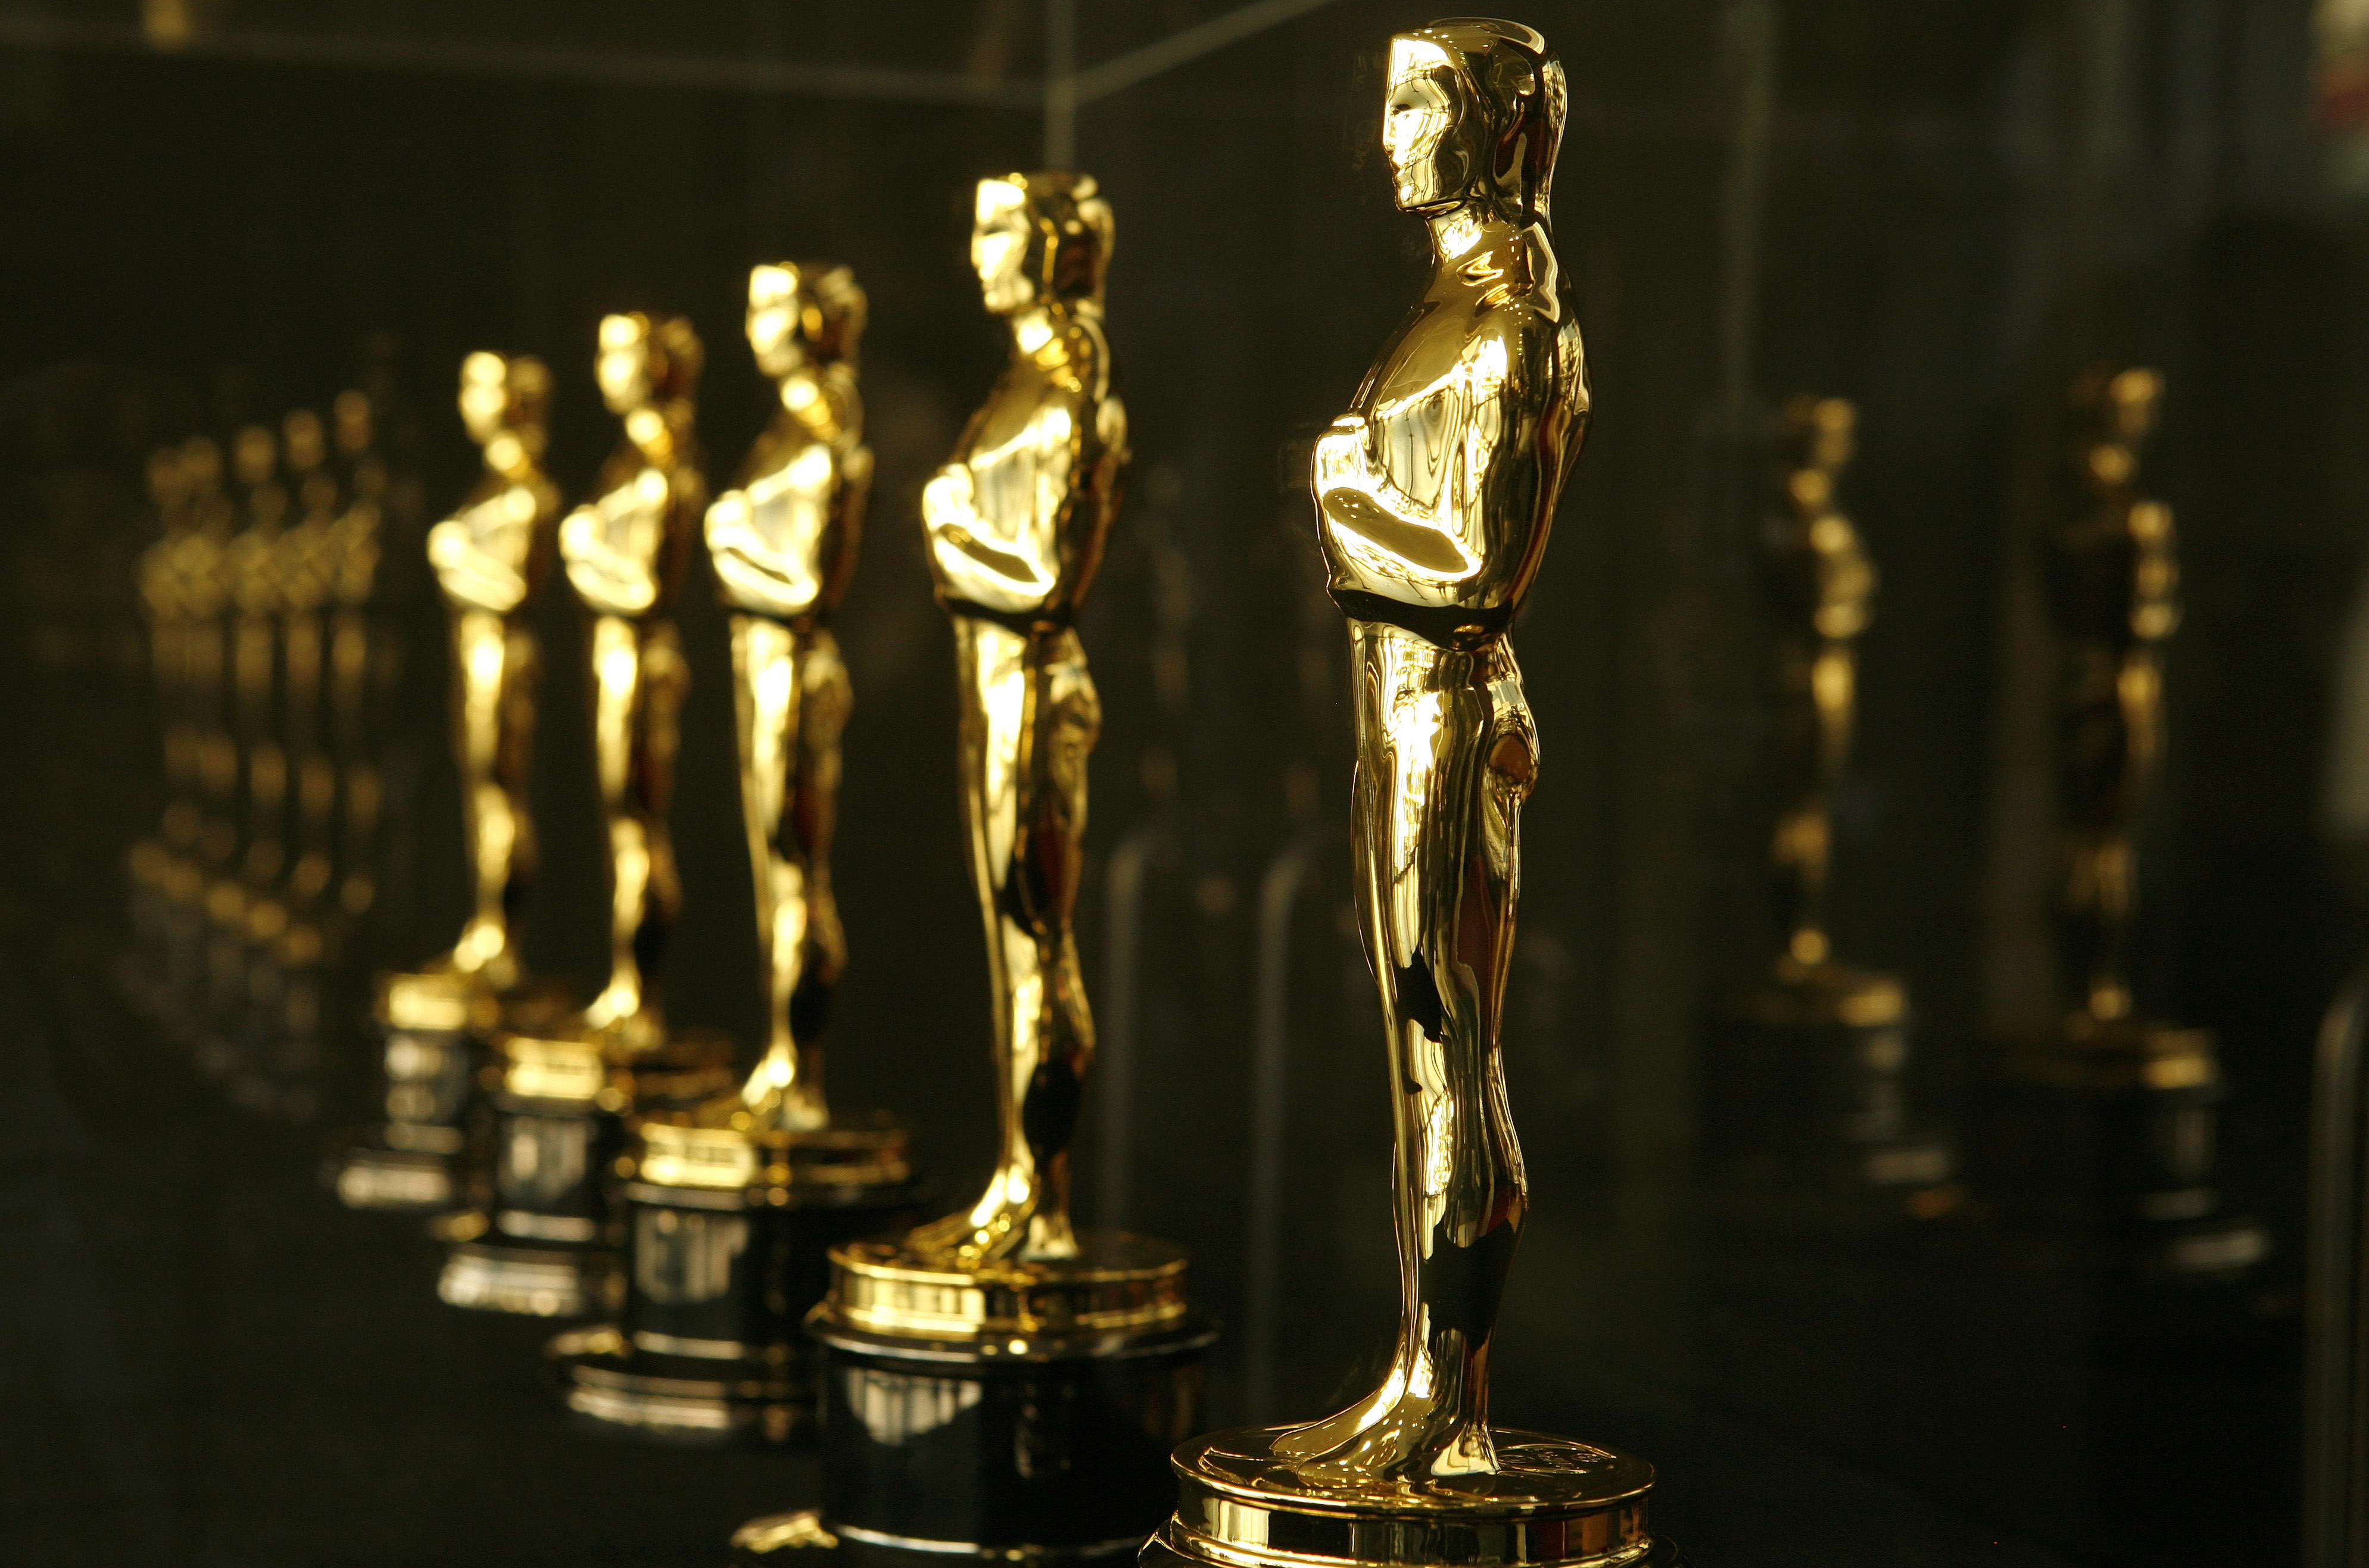 336 Feature Films In Contention For 2016 Best Picture Oscar as well The Biggest Loser Challange together with Abc Renews Oscars Broadcast Deal as well The 87th Academy Awards also NAACP Image Awards 2011 Halle Berry Bares Belly Daring Dress. on oscar trophy